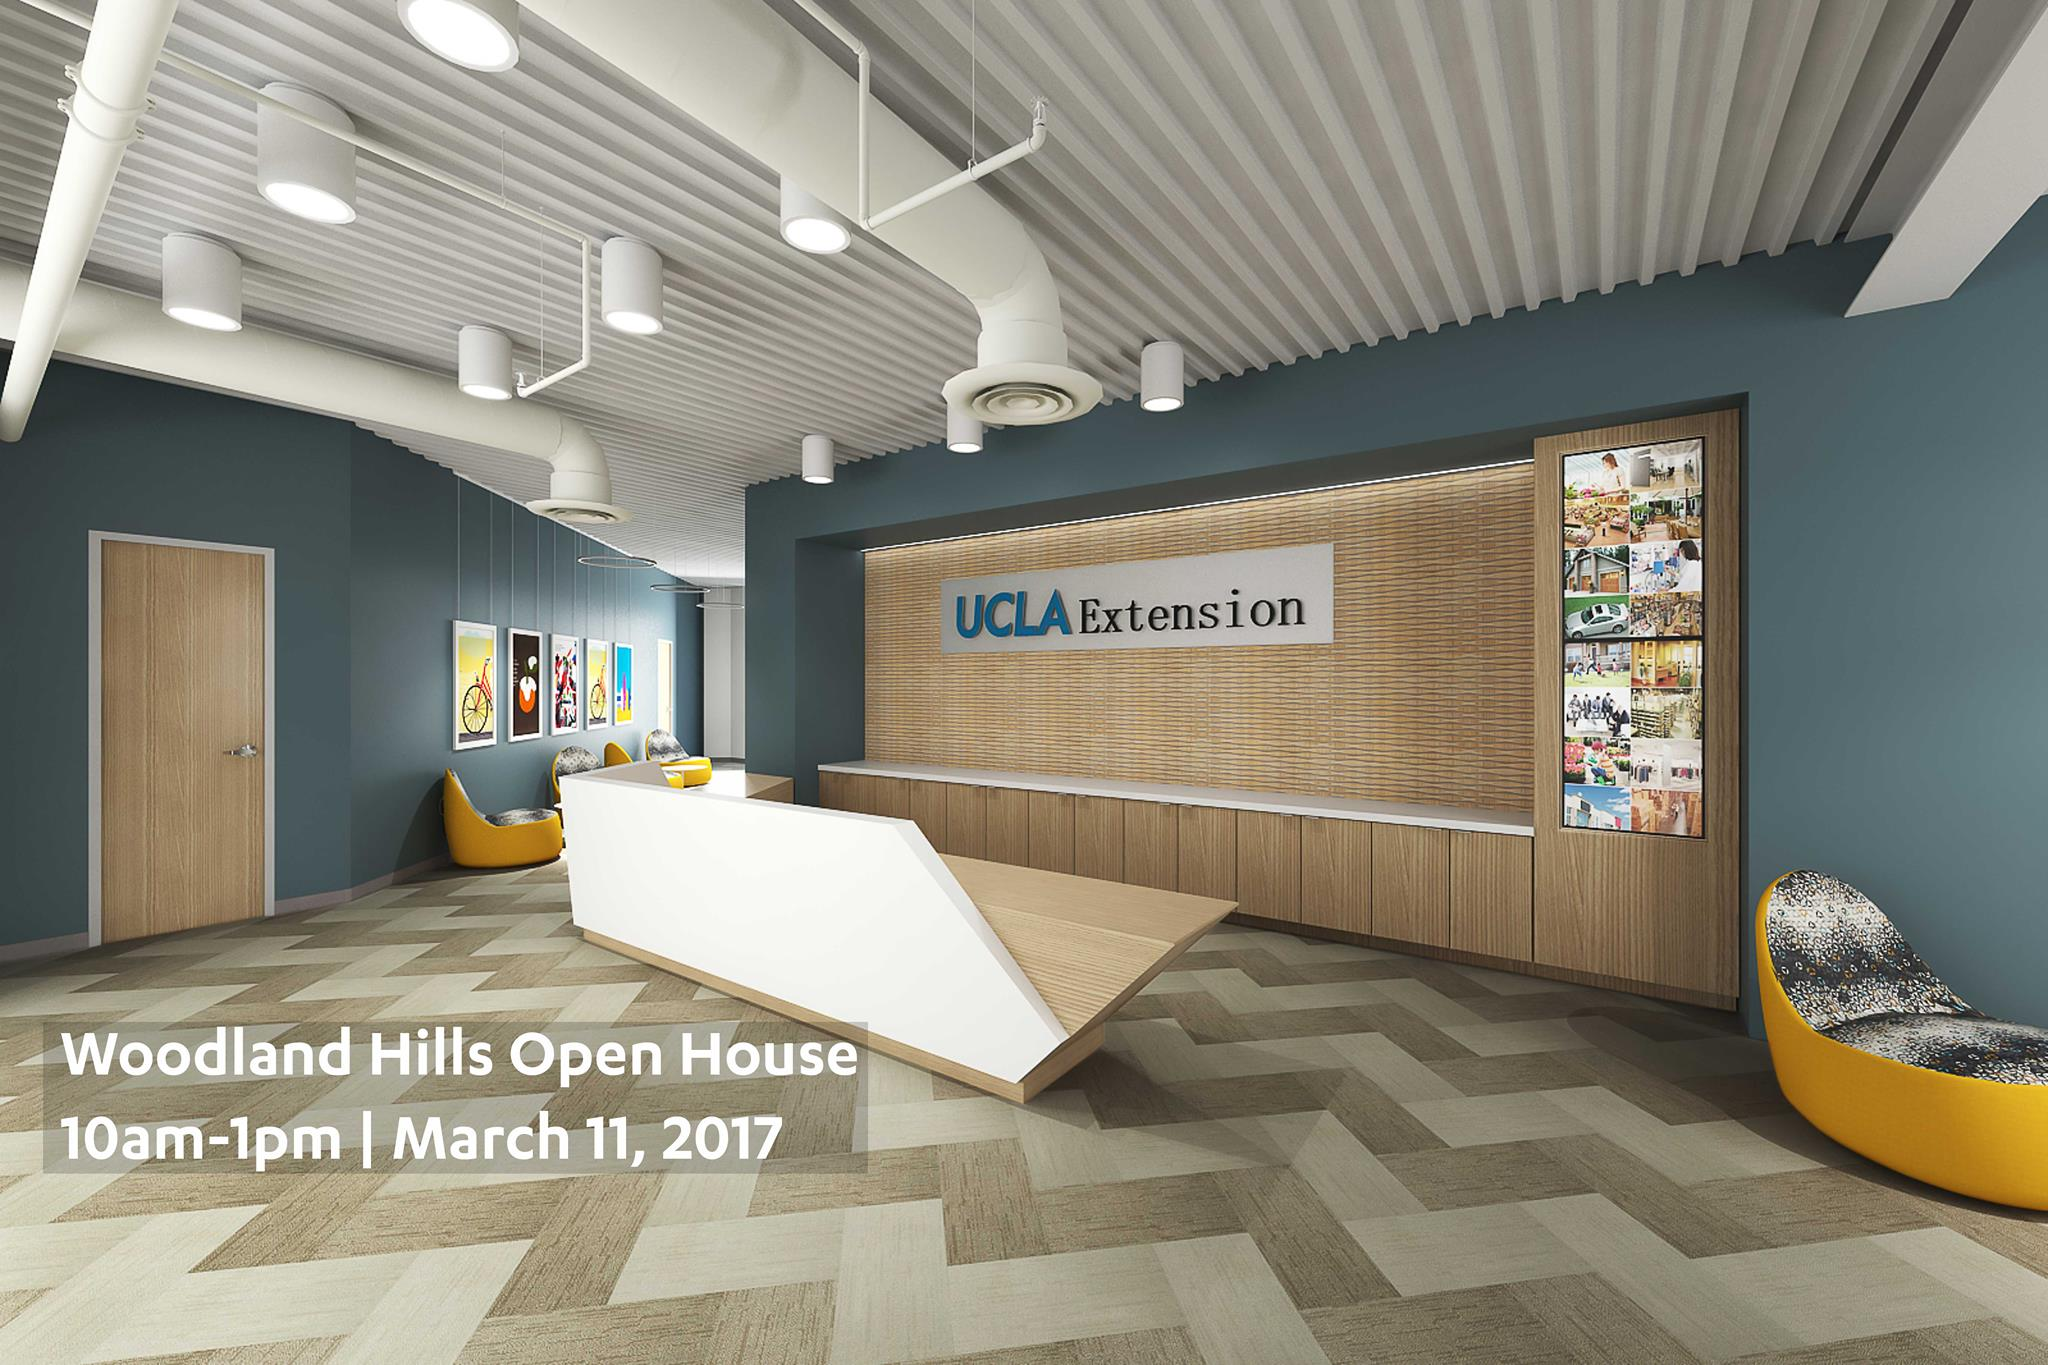 Enjoyable Ucla Extension Woodland Hills Grand Opening And Reception Download Free Architecture Designs Grimeyleaguecom